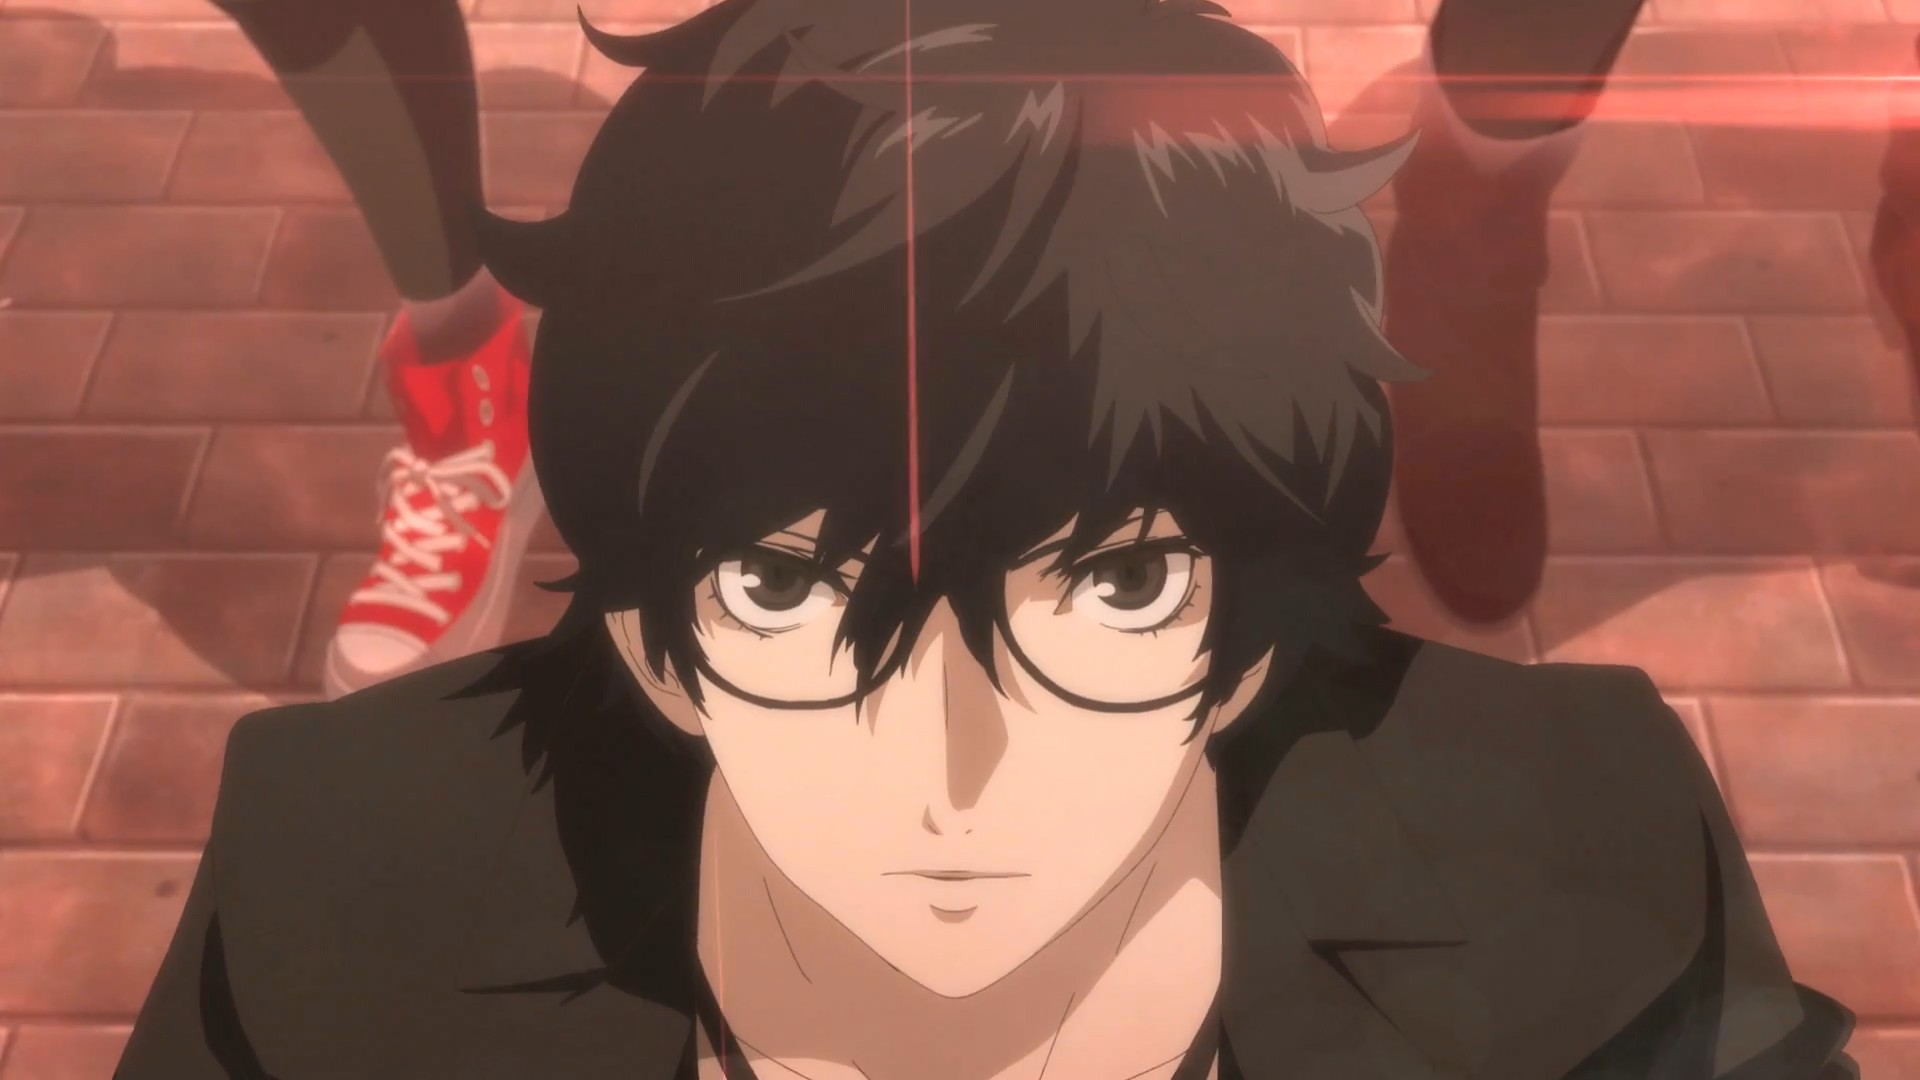 Persona 5 Anime Characters : Persona gets release date in japan new trailer dlc and